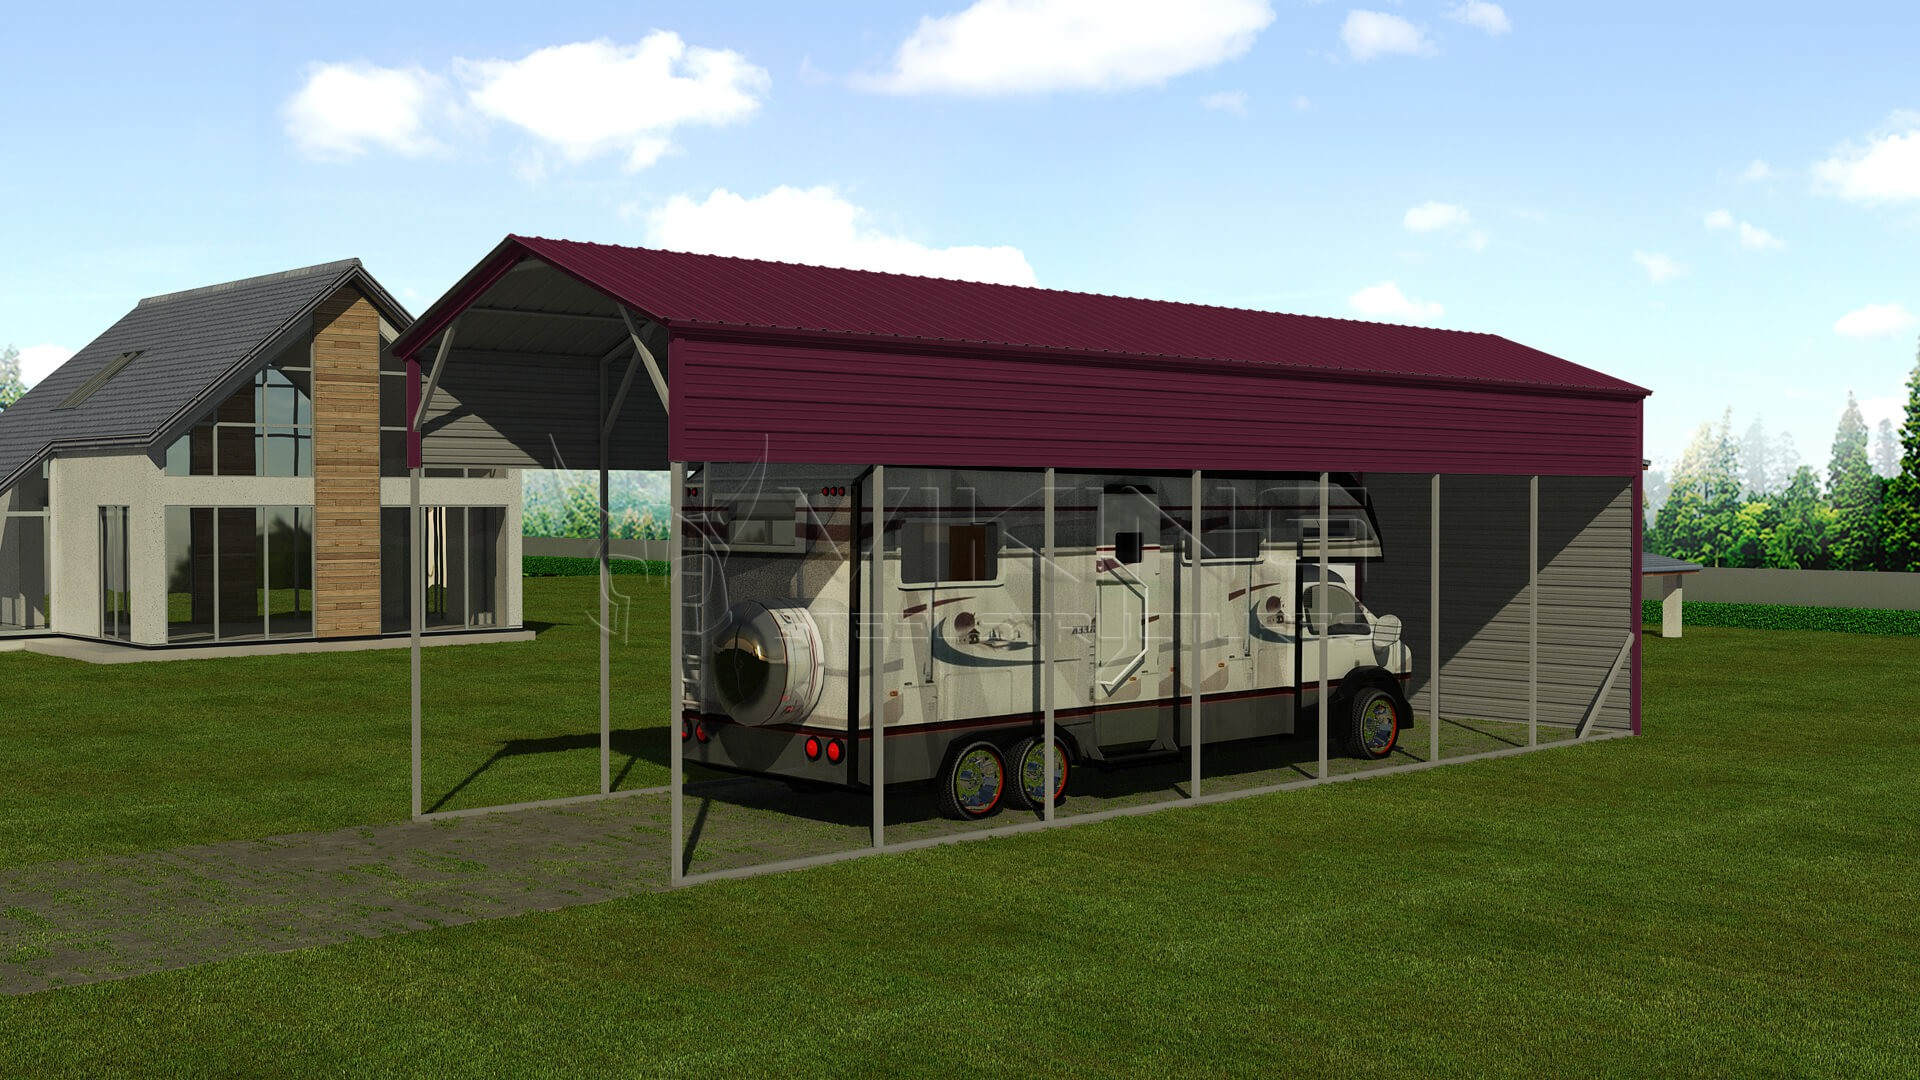 12x41-metal-rv-shelter-right-true-burgundy-image